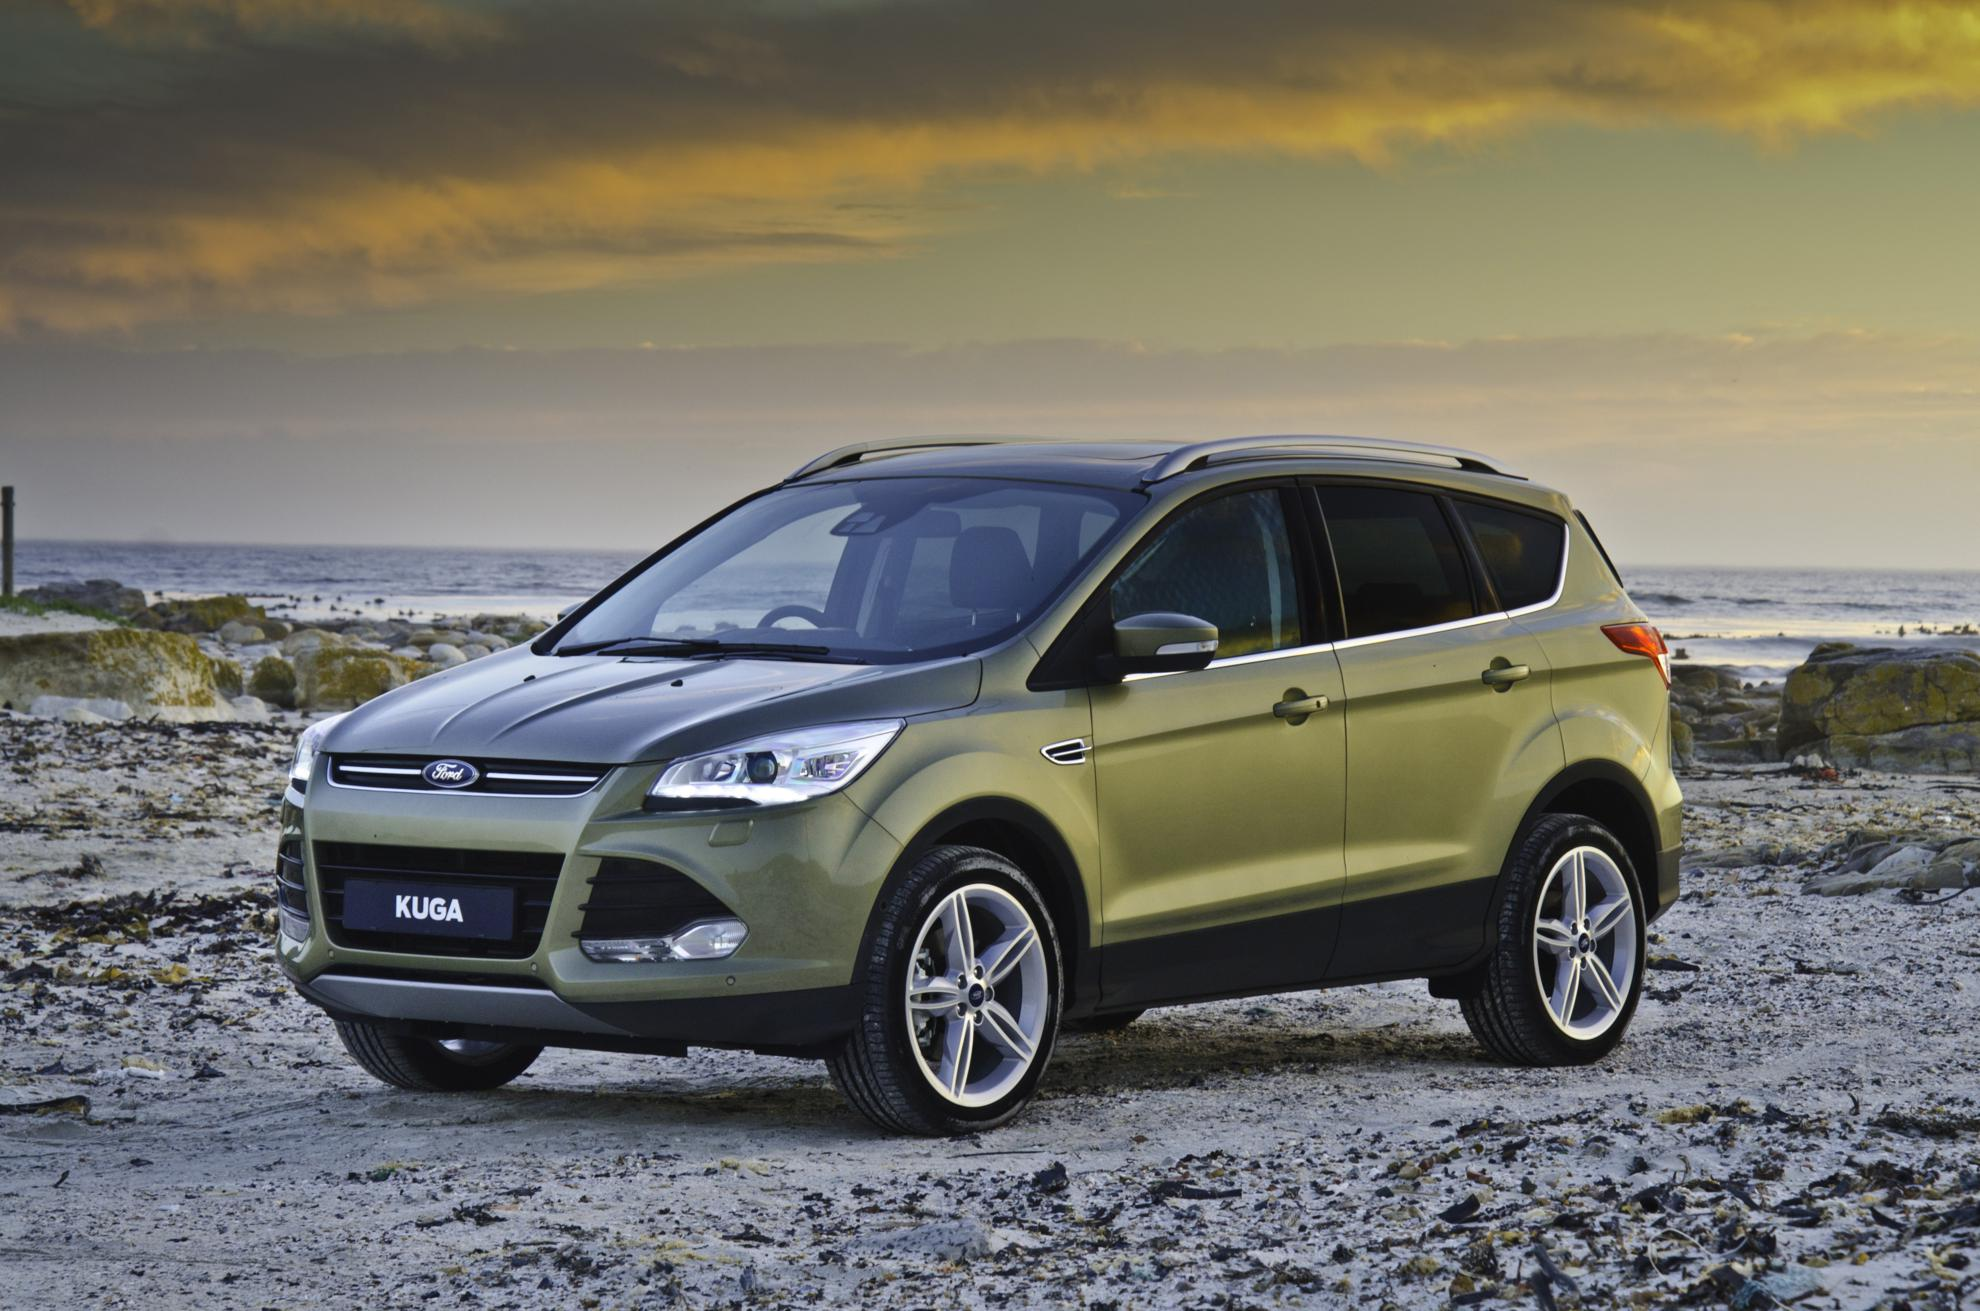 13 Ford Escape Wallpapers Hd High Quality Download